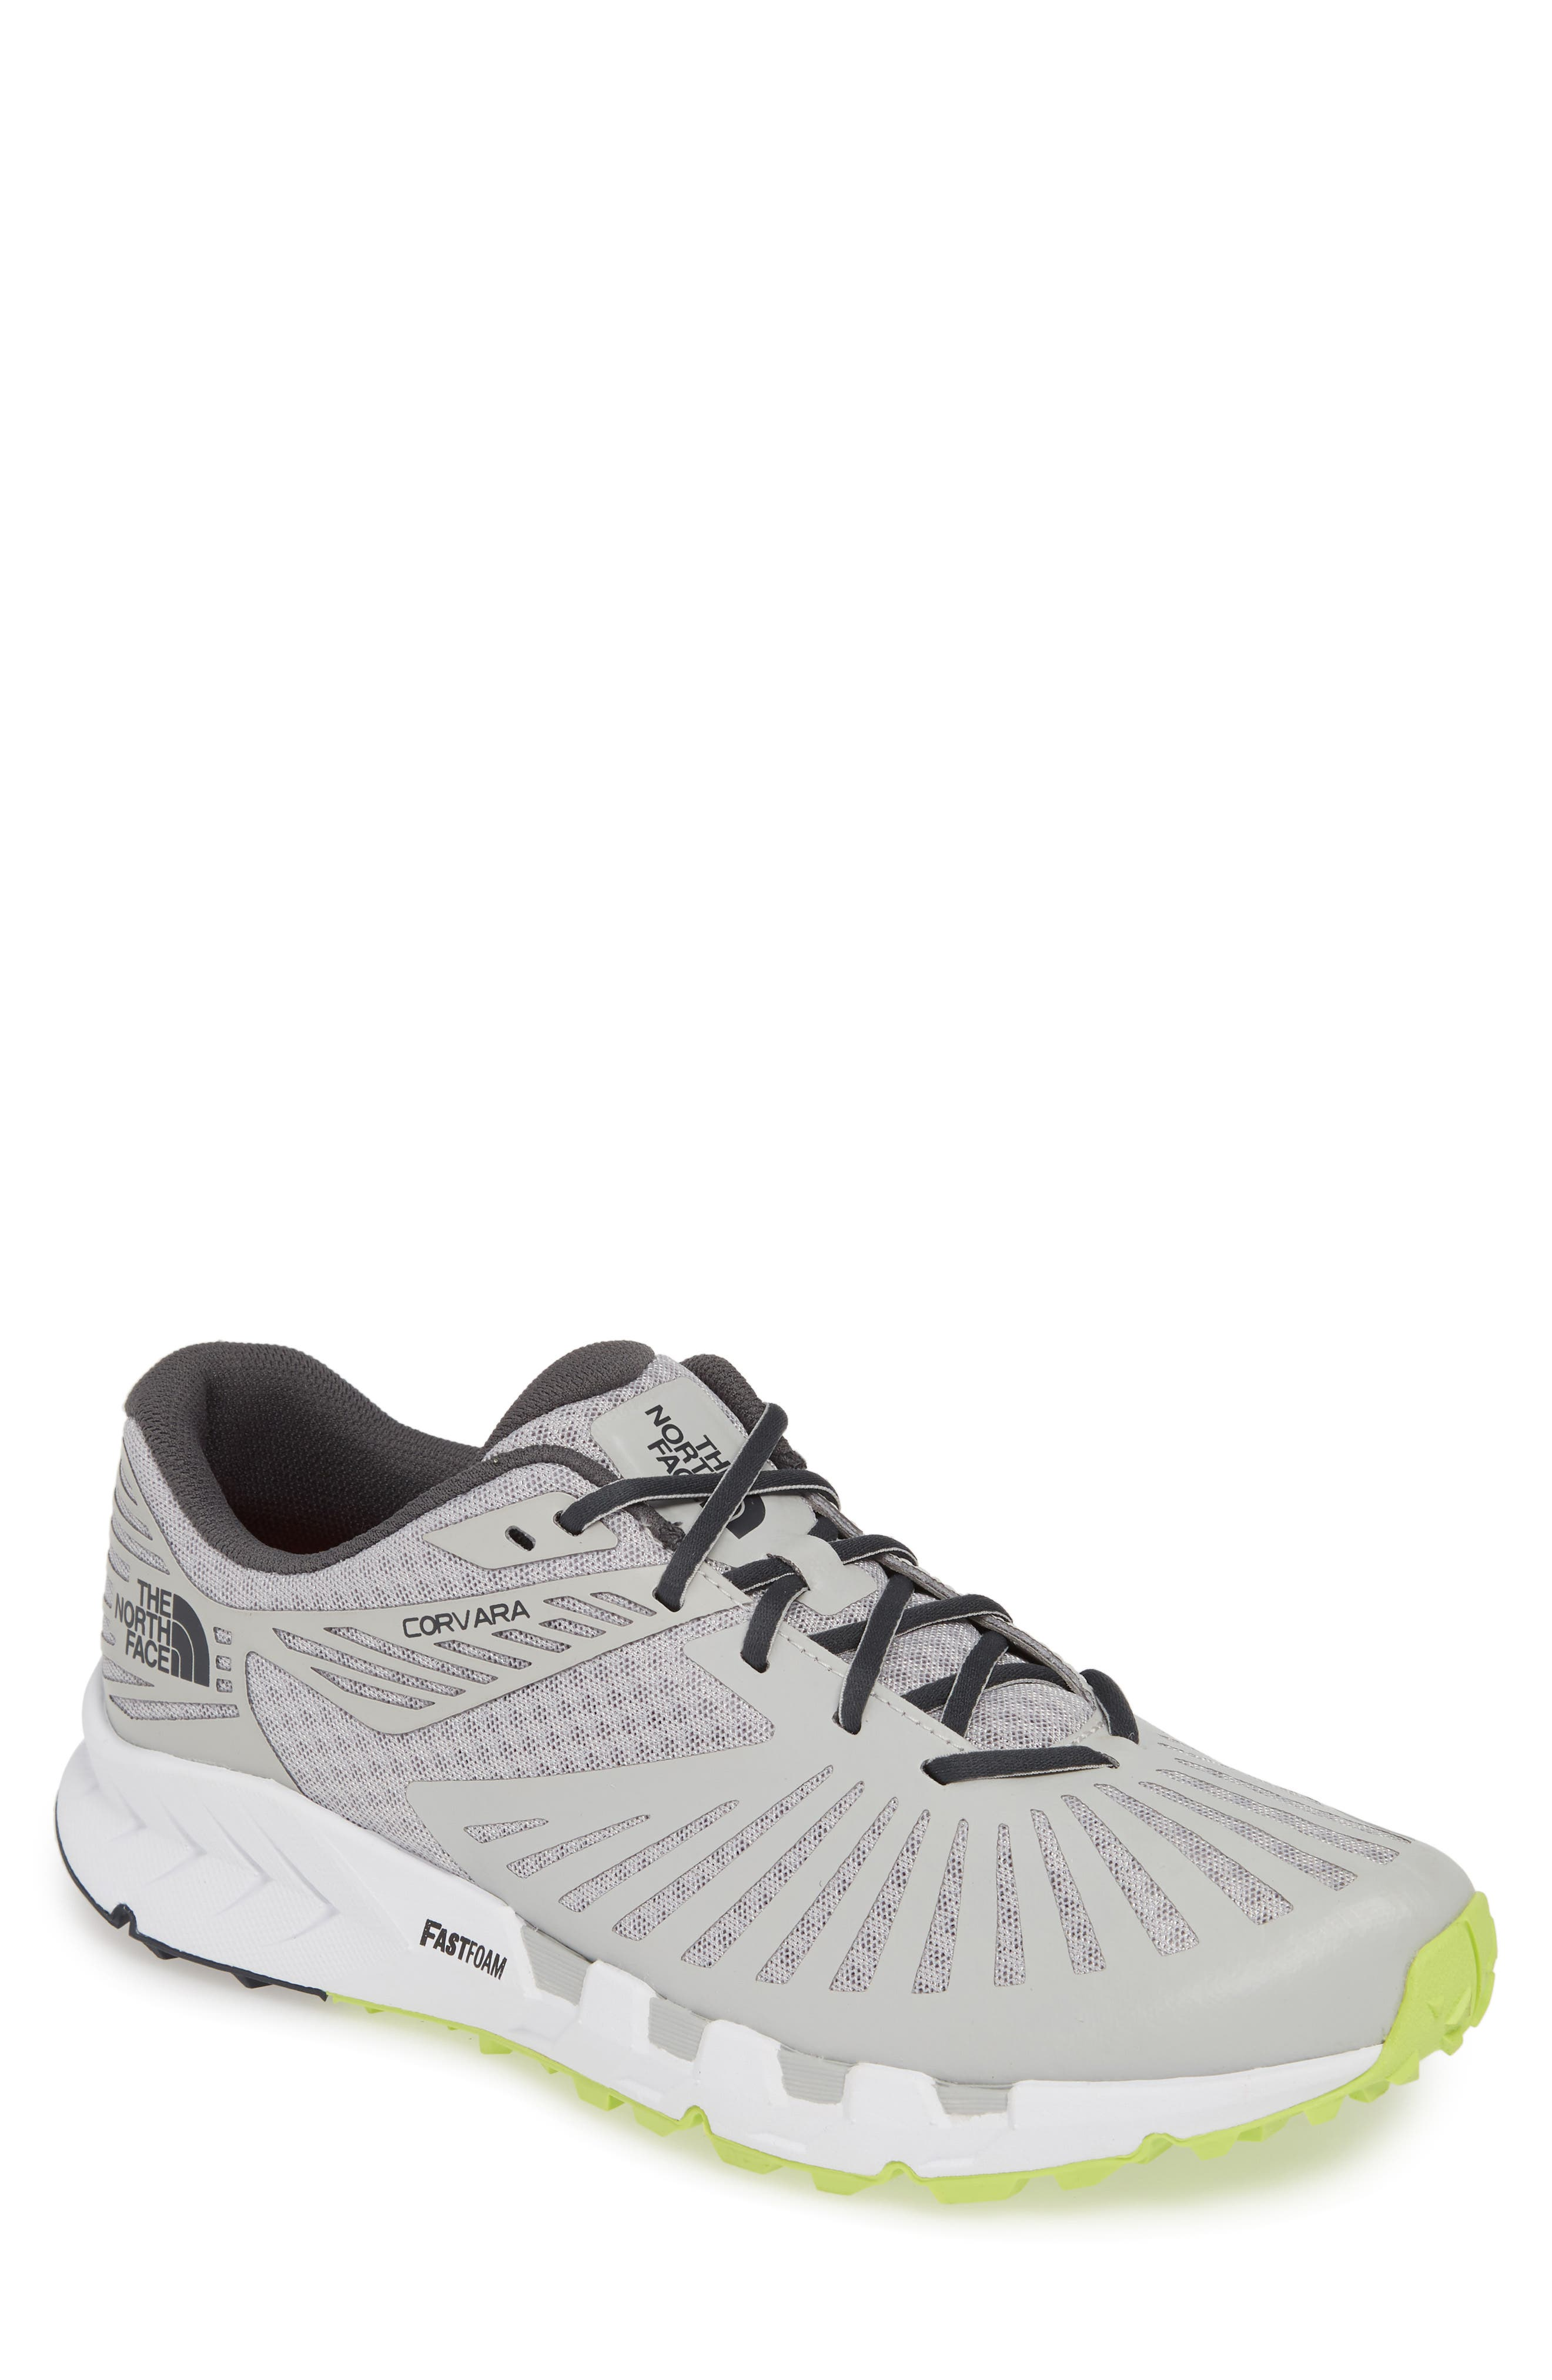 The North Face Corvara Trail Running Sneaker, Grey